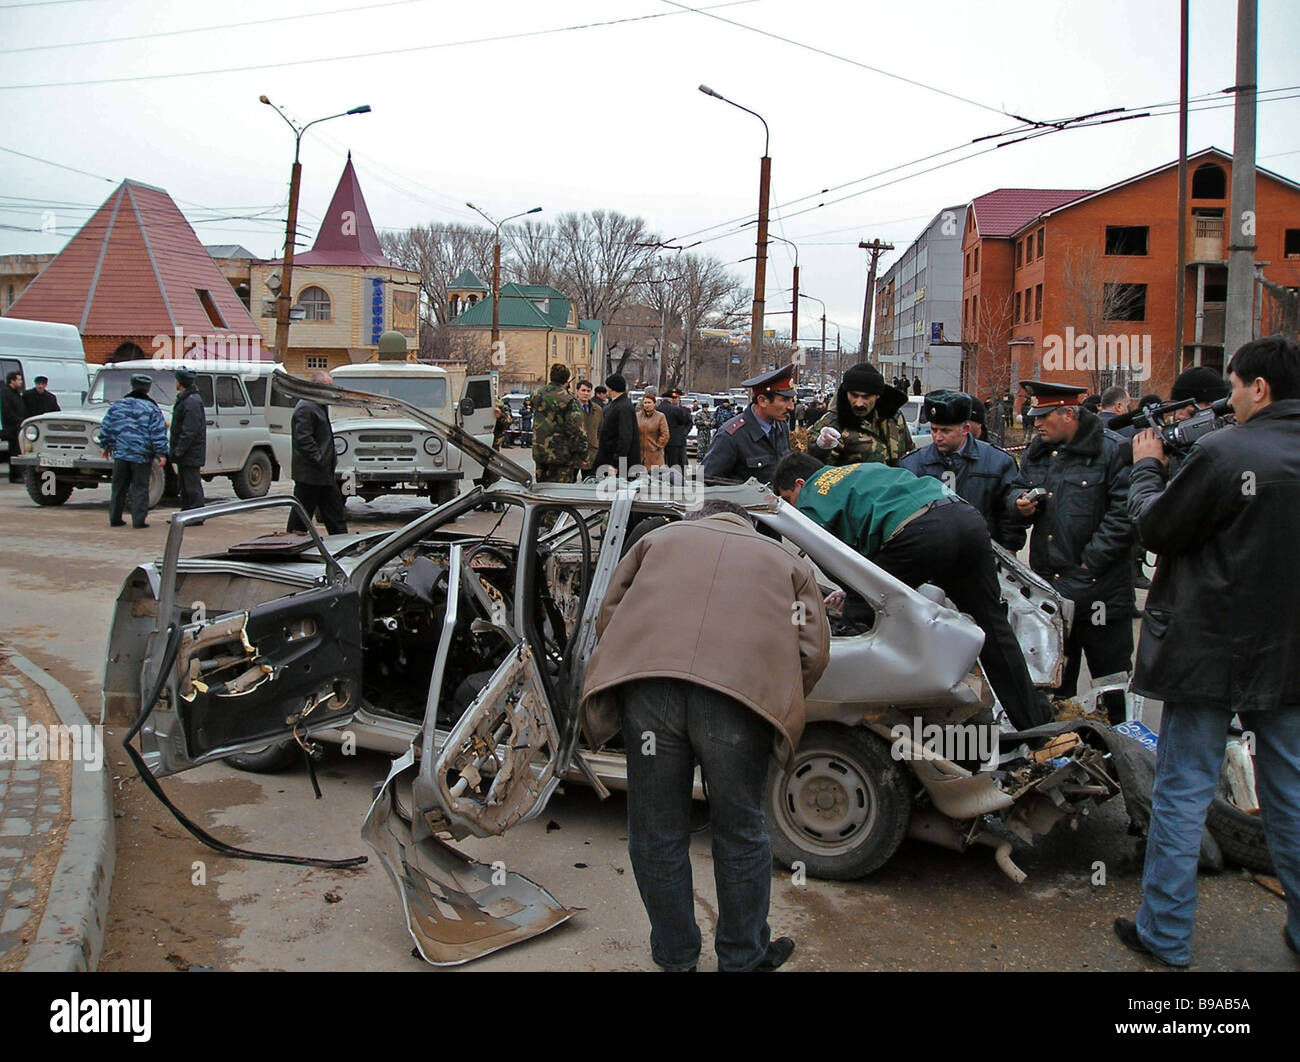 A car explosion in Makhachkala killed Magomed Magomedov deputy head of the criminal police in Dagestan - Stock Image